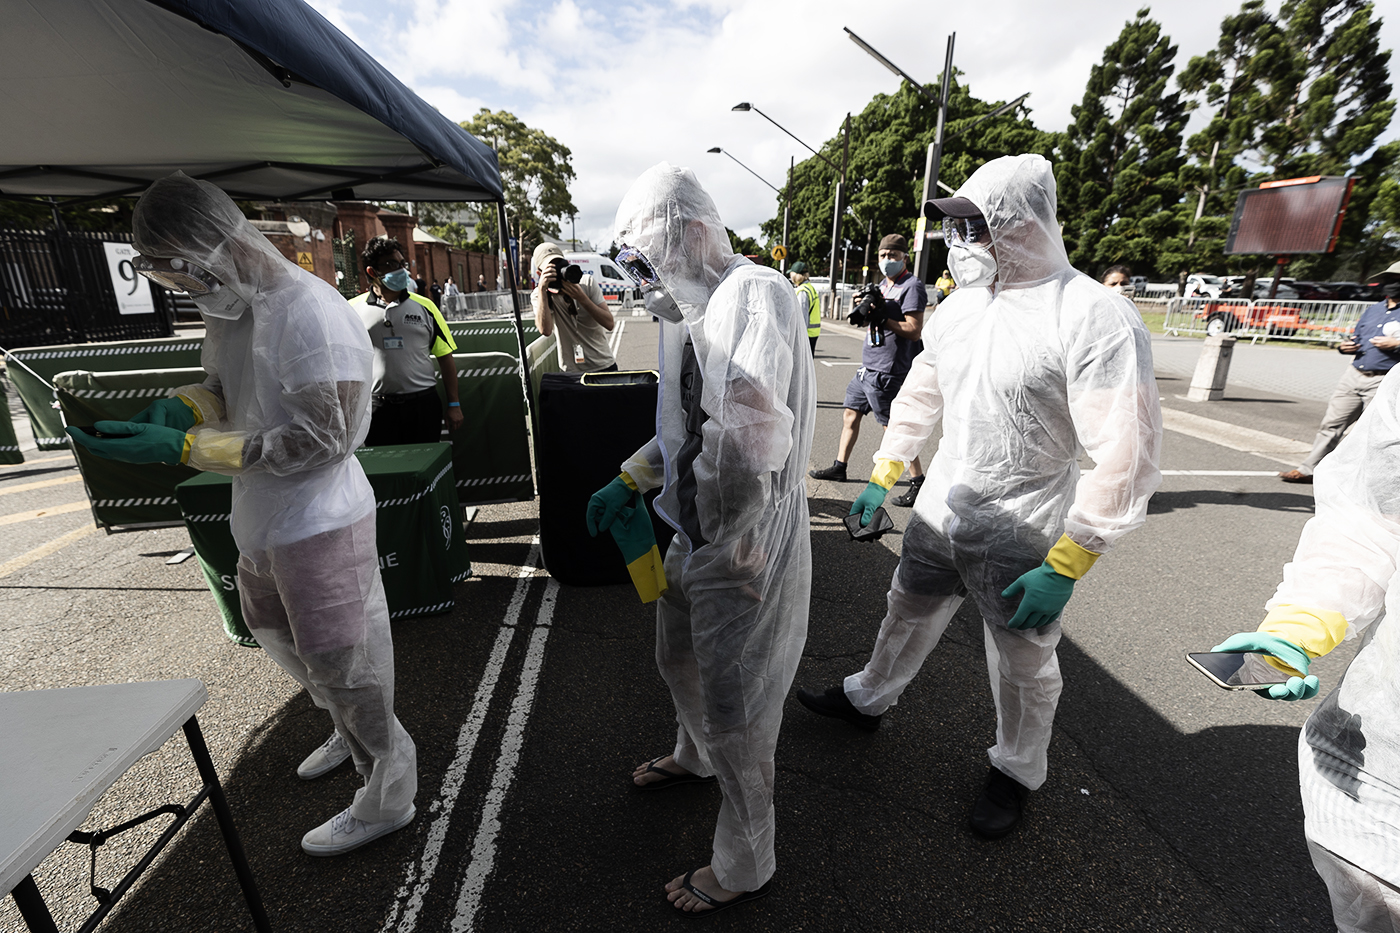 Spectators mix entertainment with safety when arriving for the SCG Test between India and Australia